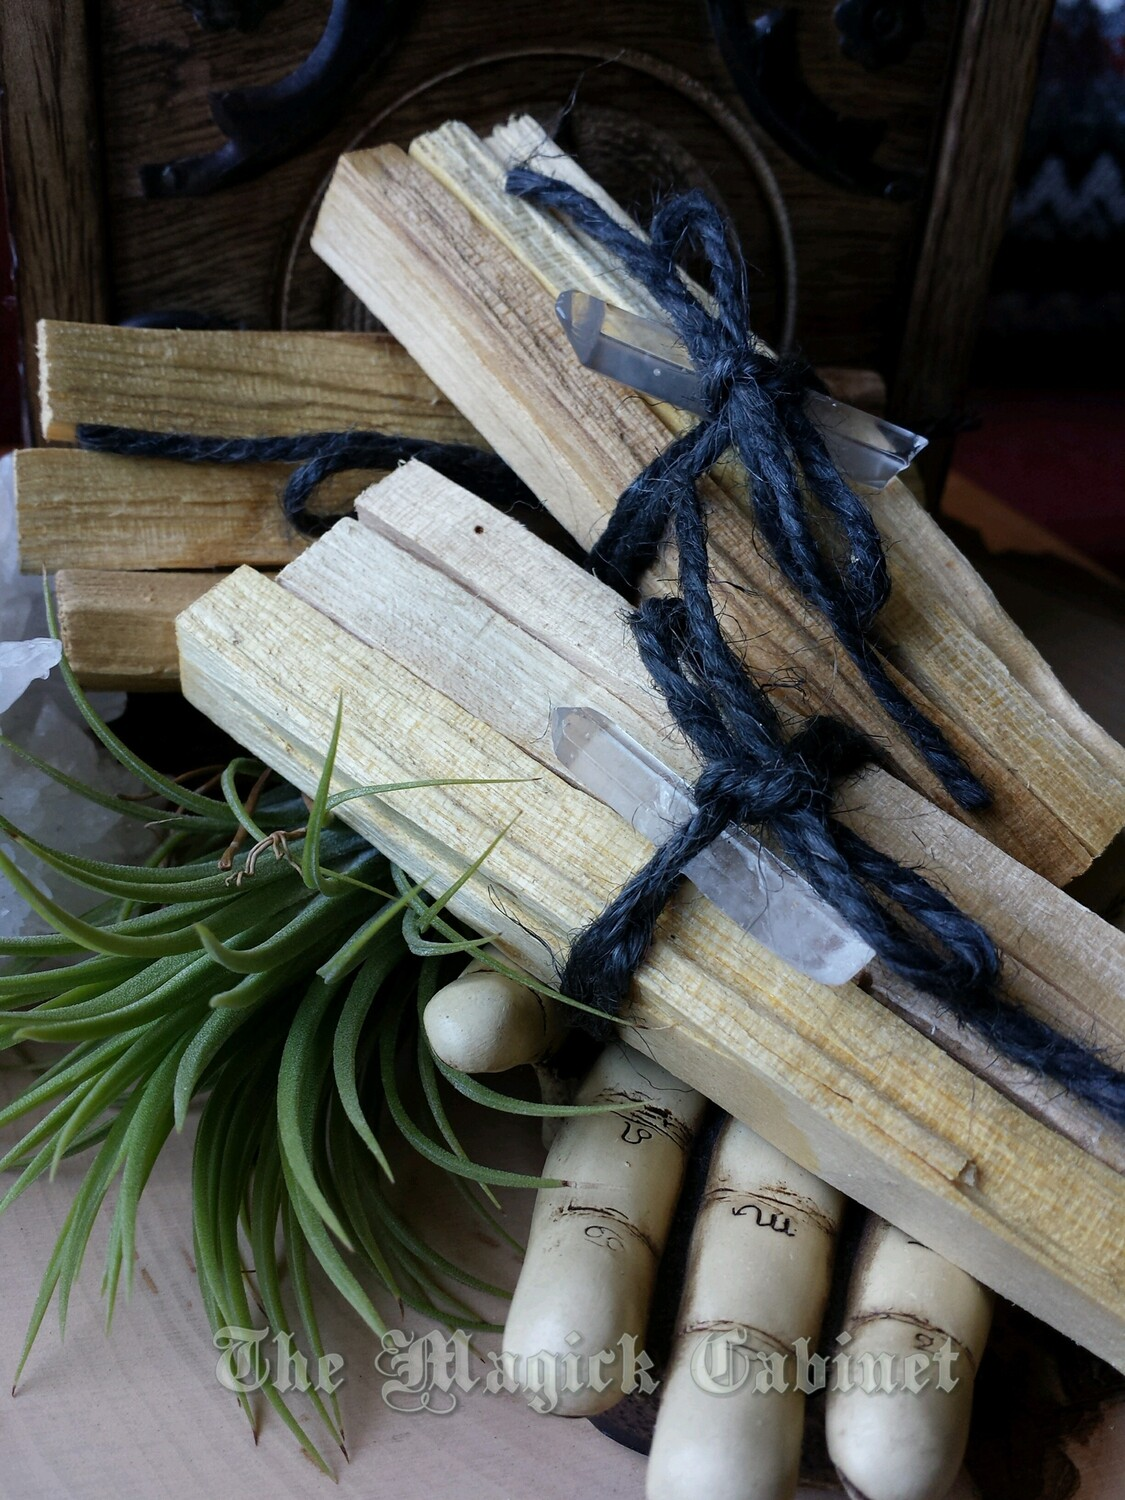 Palo Santo Sticks with Lemurian Seed crystal for Clearing, Peaceful  Vibrations, Banishing Negativity and Keeping Bugs Away, Witchcraft and  Wicca